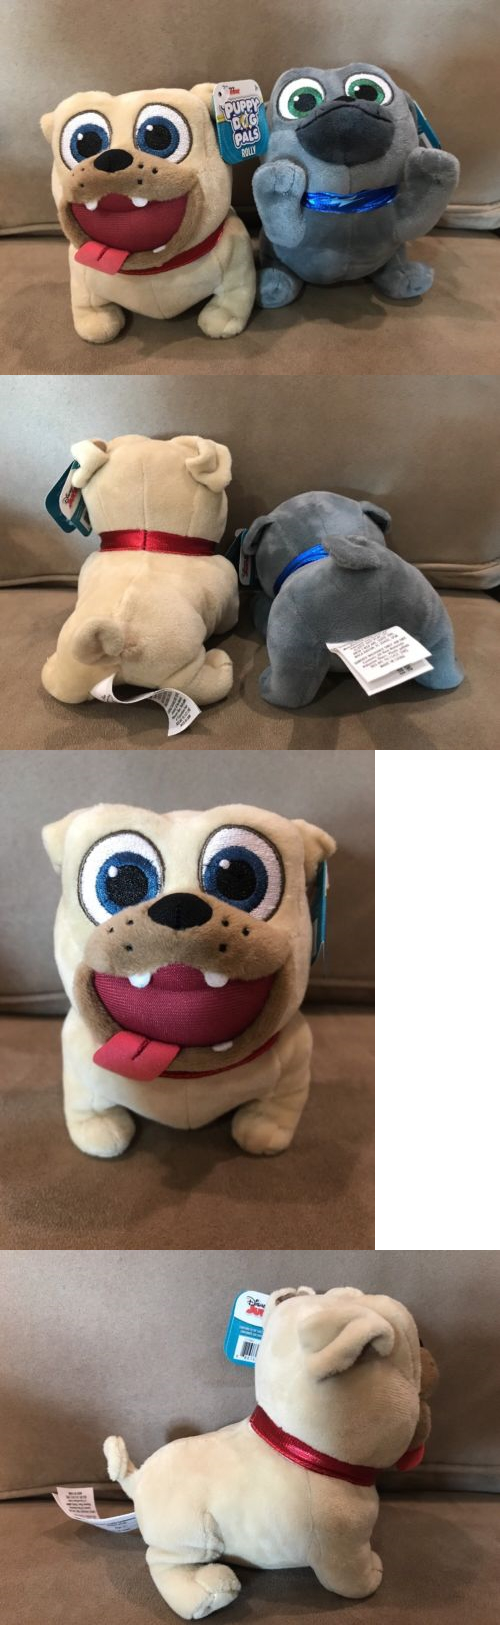 Other Tv Movie Character Toys 2622 Disney Junior Puppy Dog Pals